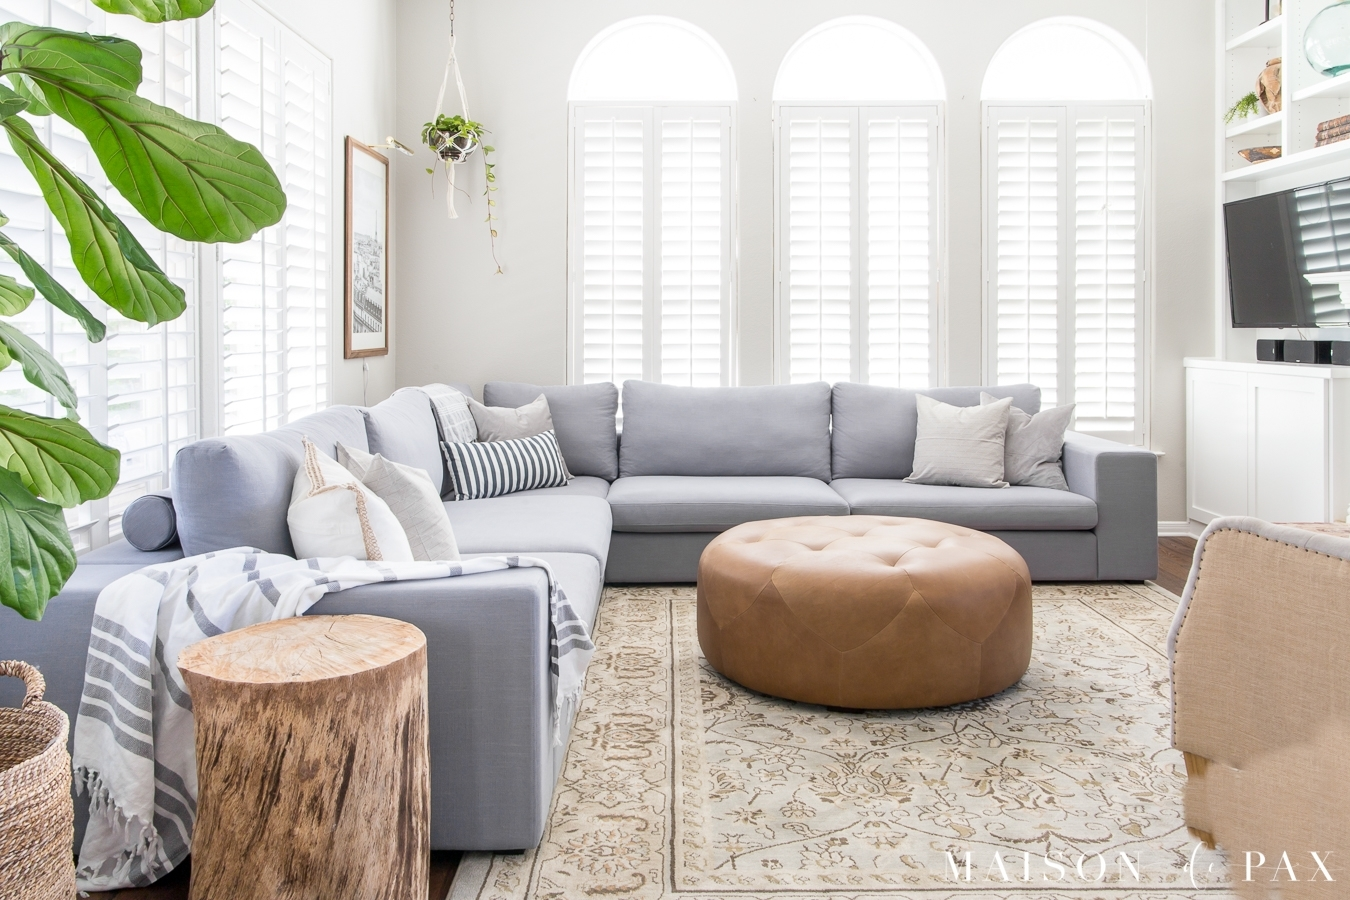 Designing A Small Living Room With A Large Sectional - Maison De Pax within Marissa Ii 3 Piece Sectionals (Image 3 of 30)